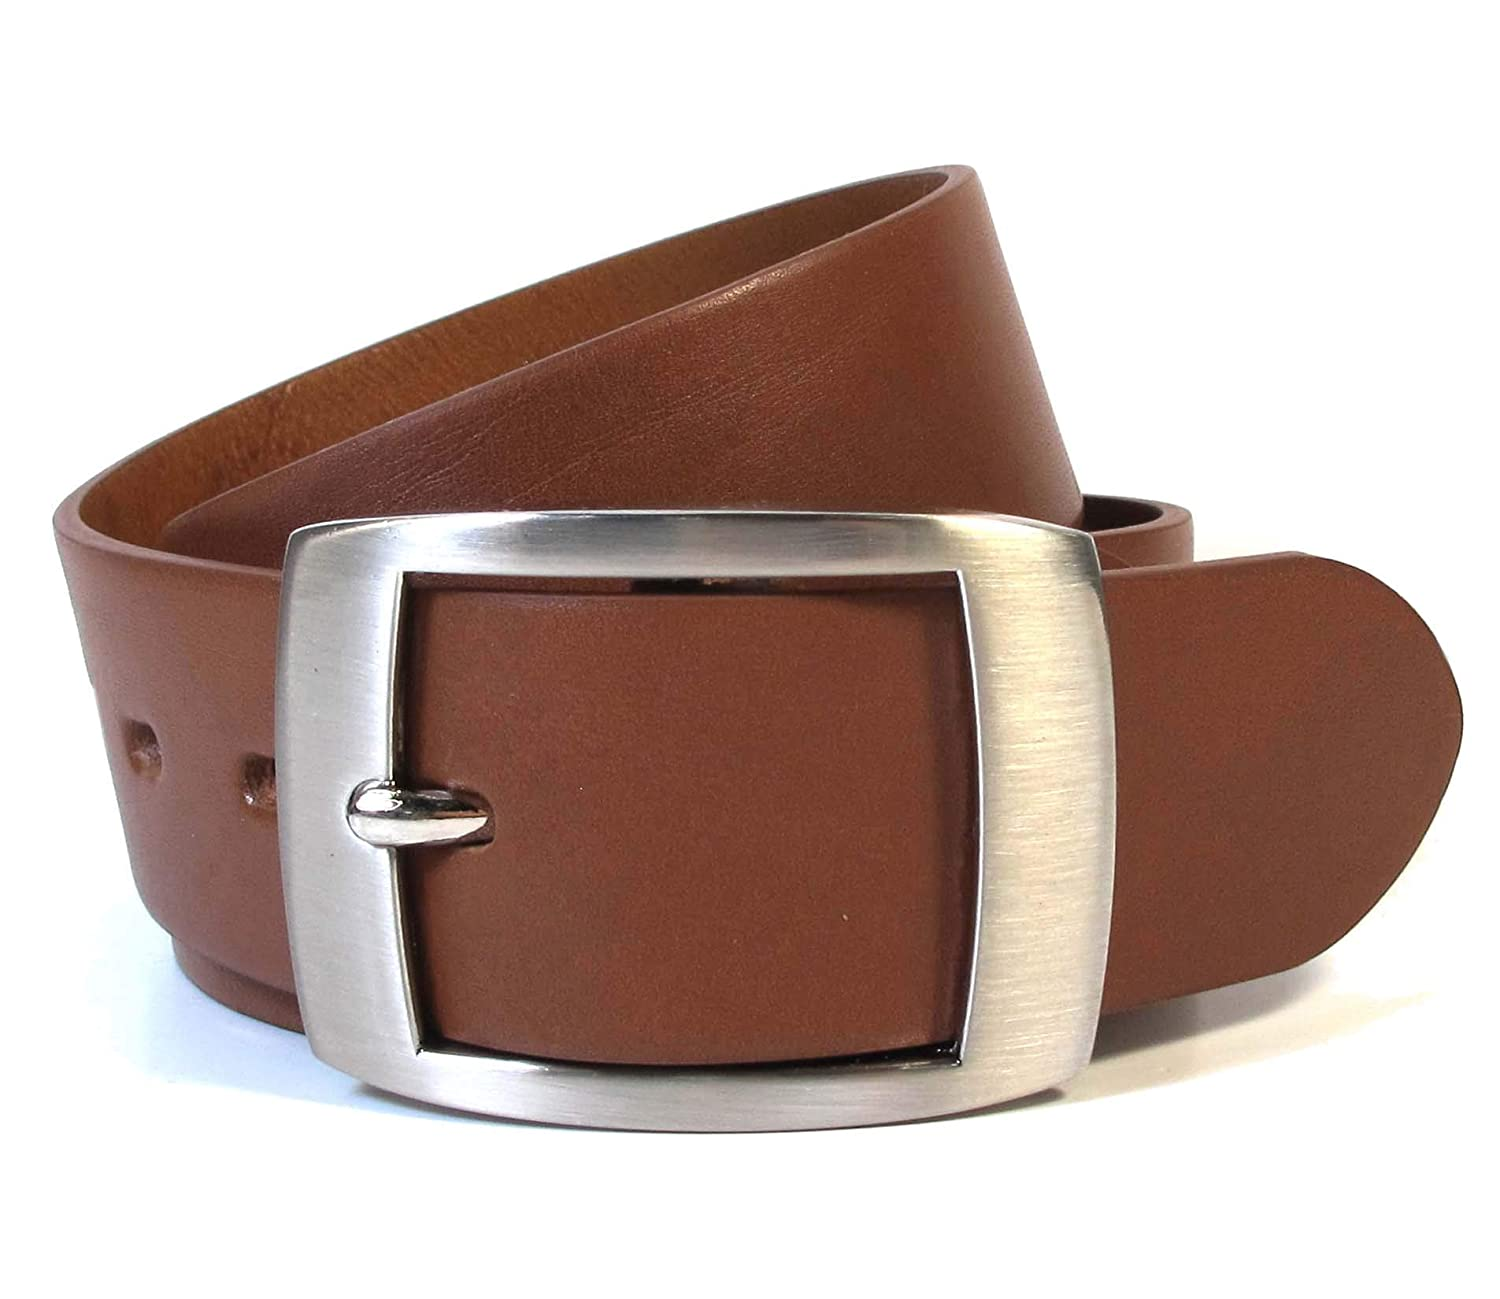 CU3 Mens Real Genuine Leather Belt Black Brown White 1.5 Wide S-XL Casual Jeans